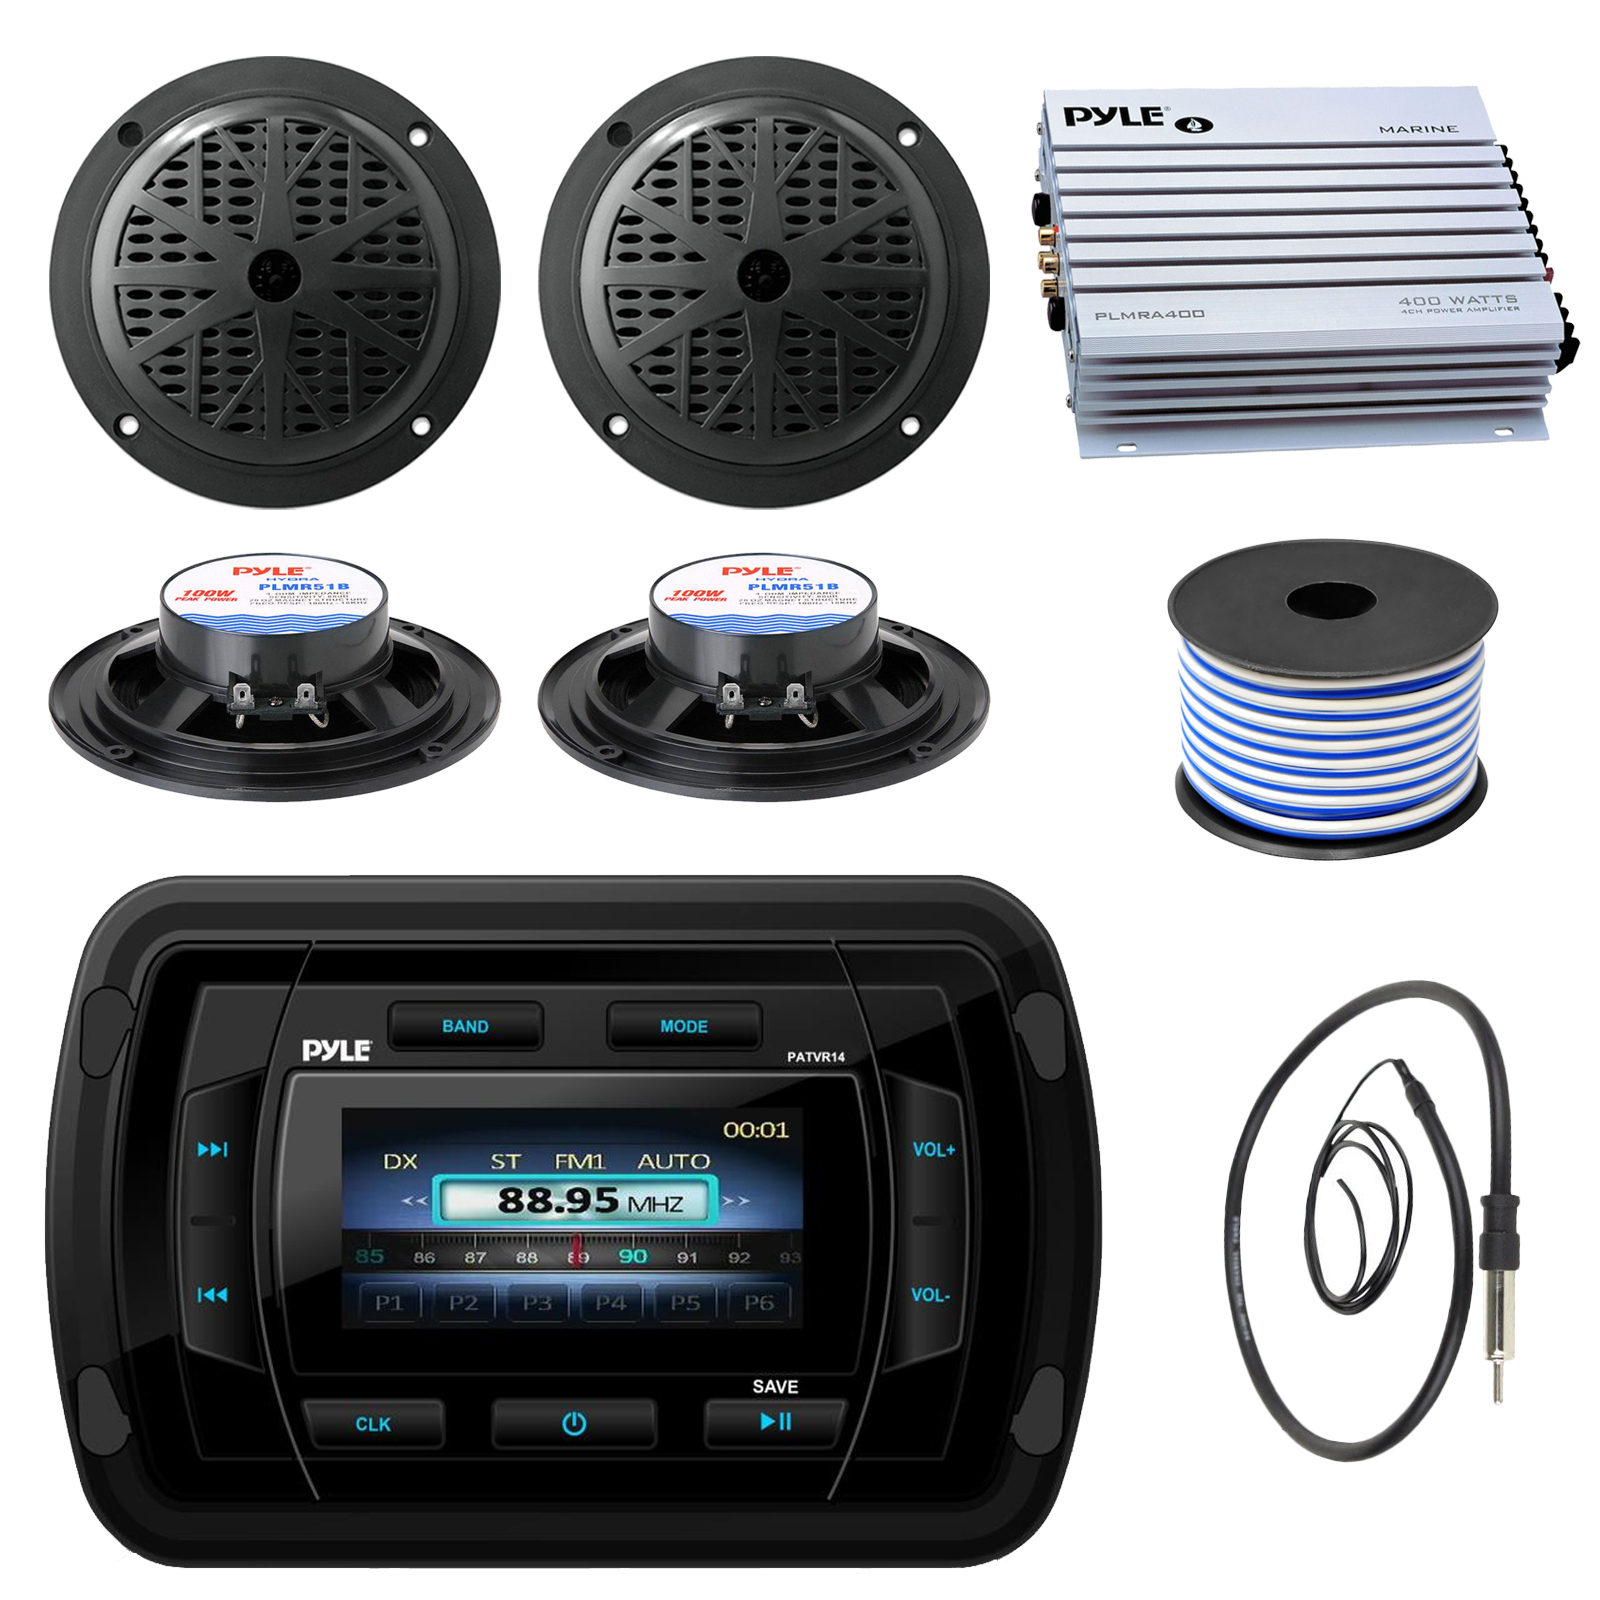 """Pyle PATVR14 MP3/MP5 Bluetooth Marine Boat Yacht Stereo Receiver Bundle Combo With 4x Black 5-1/4"""" Dual Cone Waterproof Stereo Speaker + Enrock Radio Antenna + 400 Watt Amplifier + 18G 50-FT Wire"""